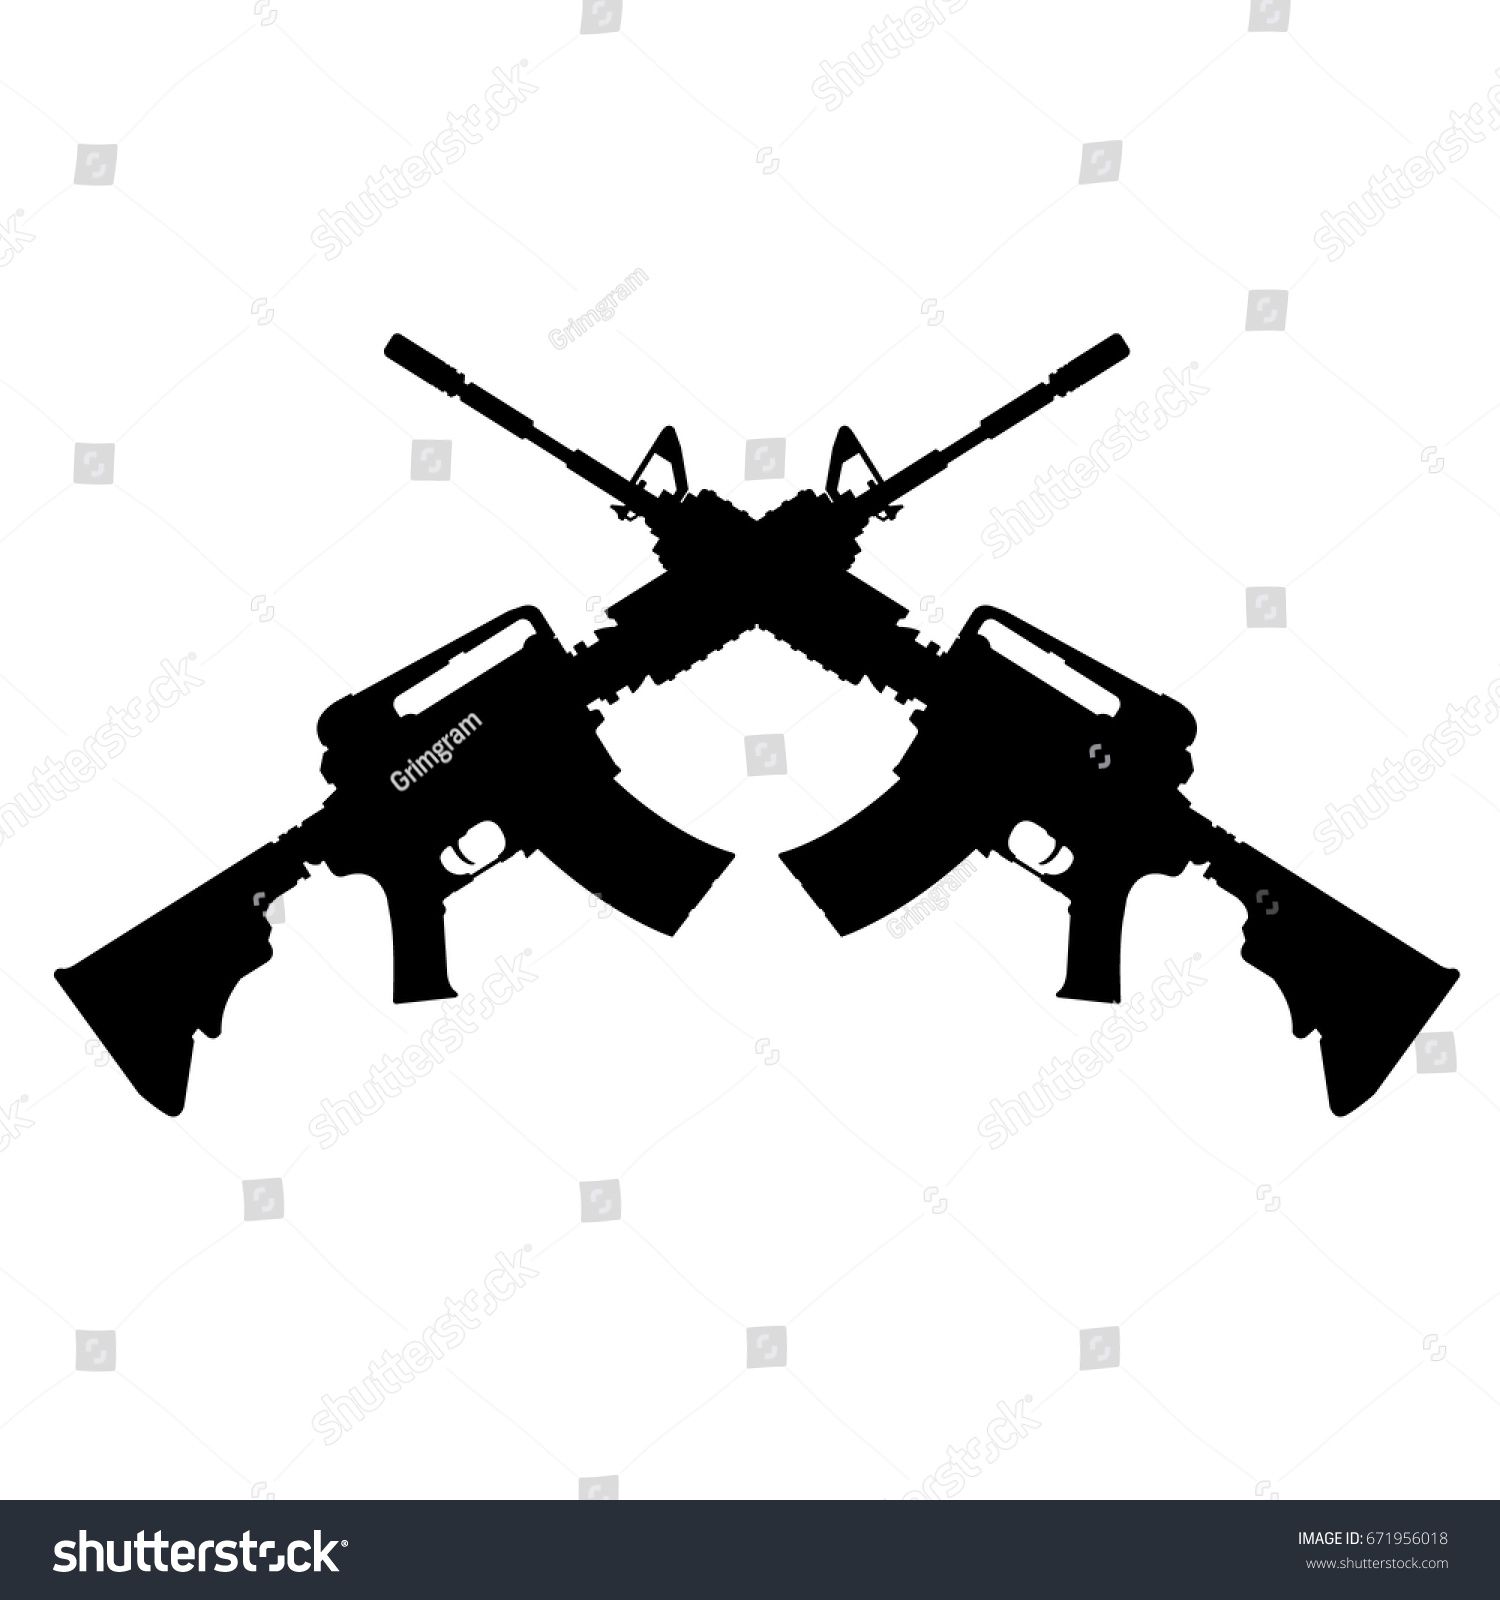 Ar15 Stock Images, Royalty-Free Images & Vectors ...  Crossed Guns M4